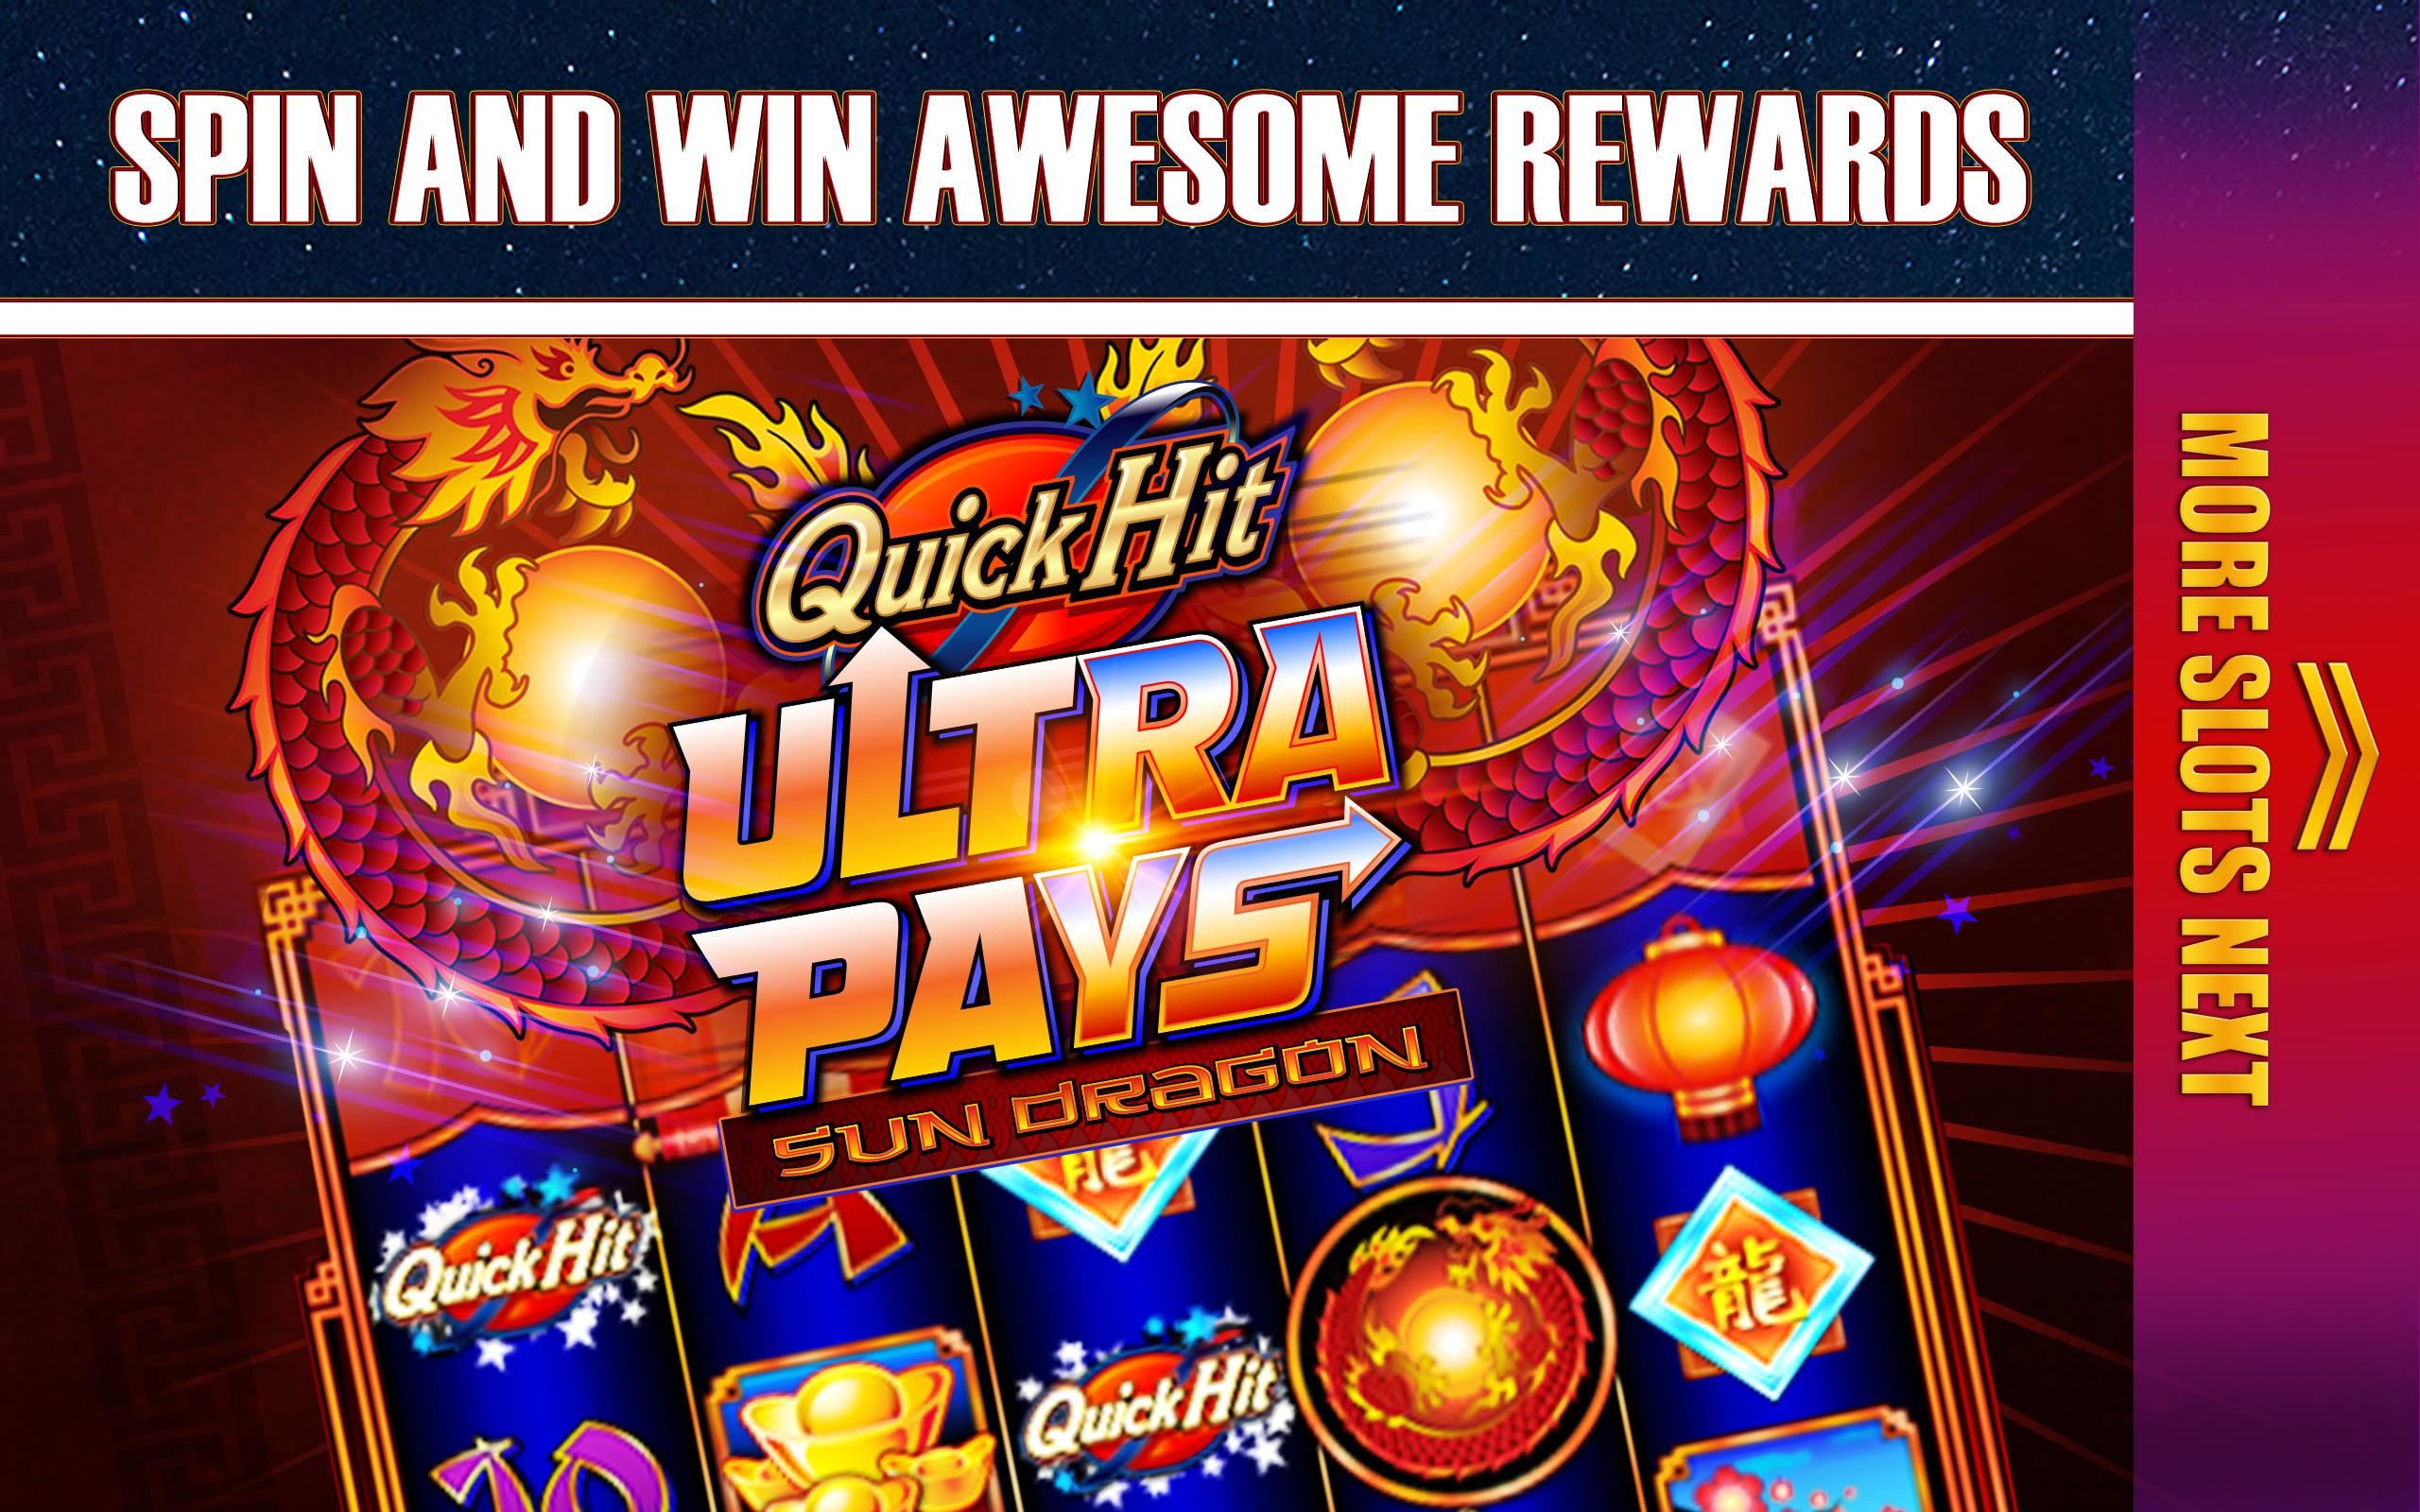 Dec 16, · Quick Hit slot from Bally developed from an old land-based platform into an online casino game that can be played for free and real money with no download requirement.The game is a 5 reels and 50 paylines penny slot with 5, jackpot prize at % RTP.4/5.